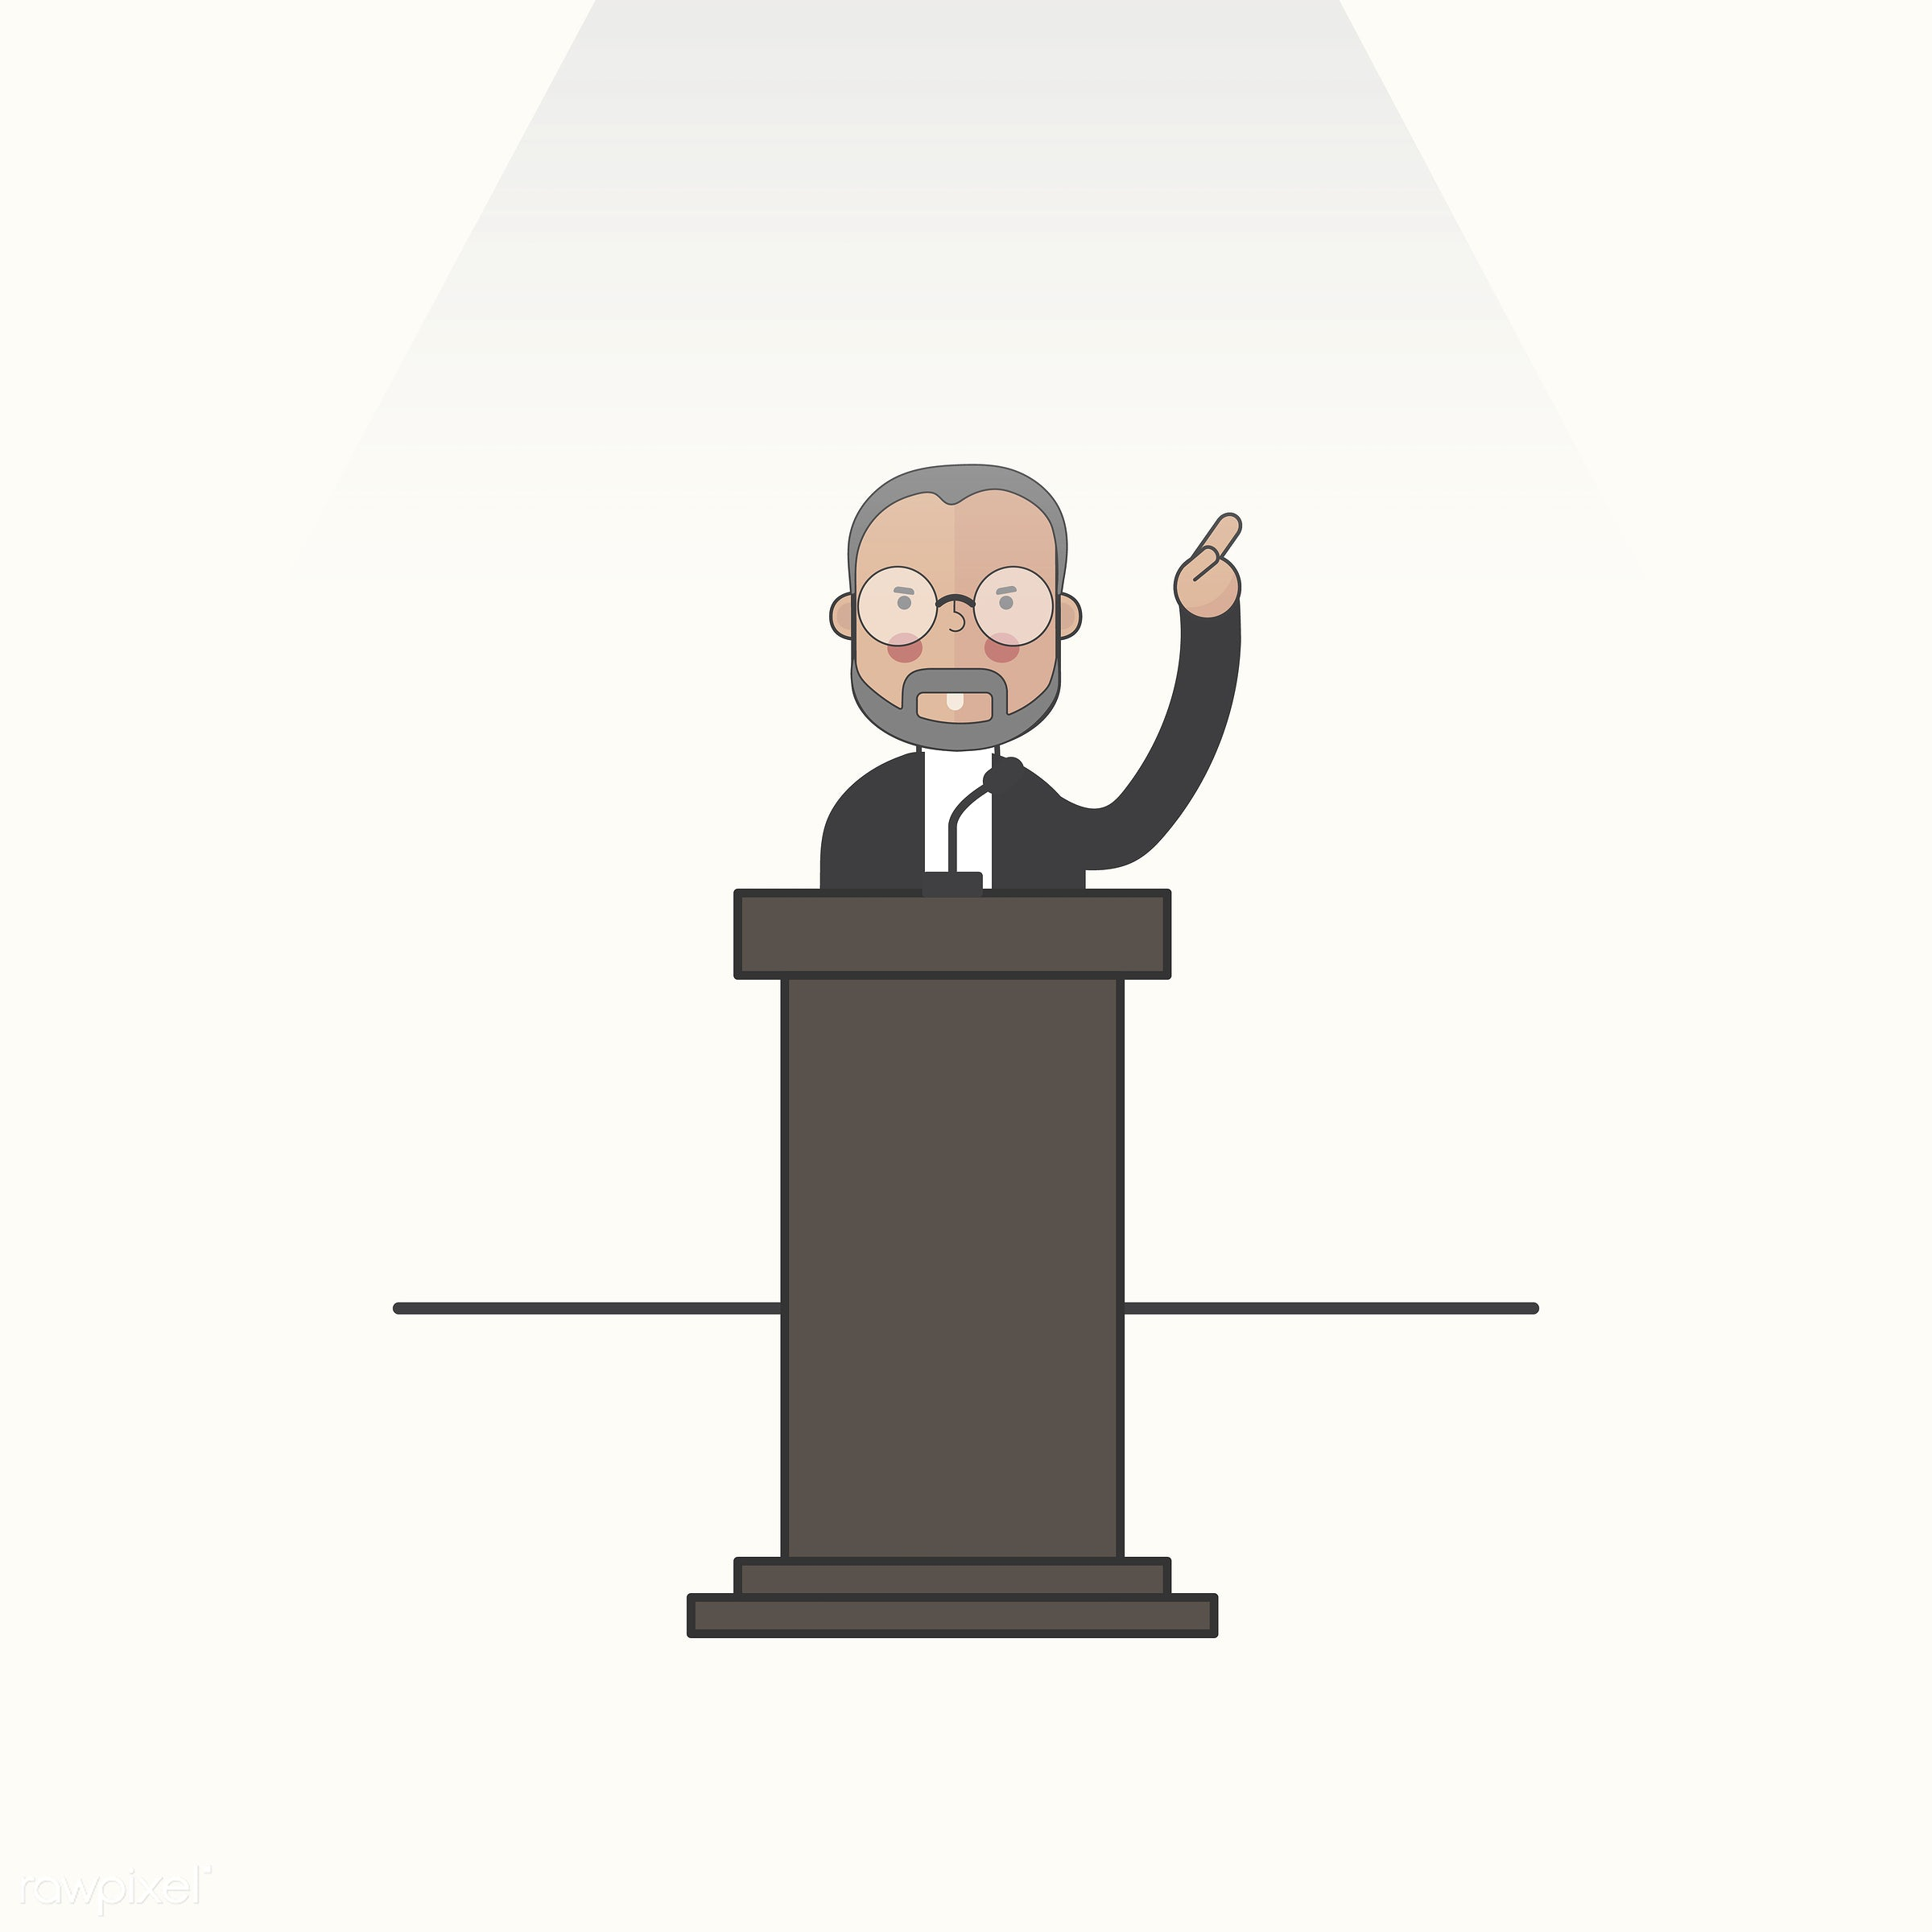 Illustration of people avatar - speech, man, podium, politician, avatar, icon, illustration, leader, lecturer, political,...